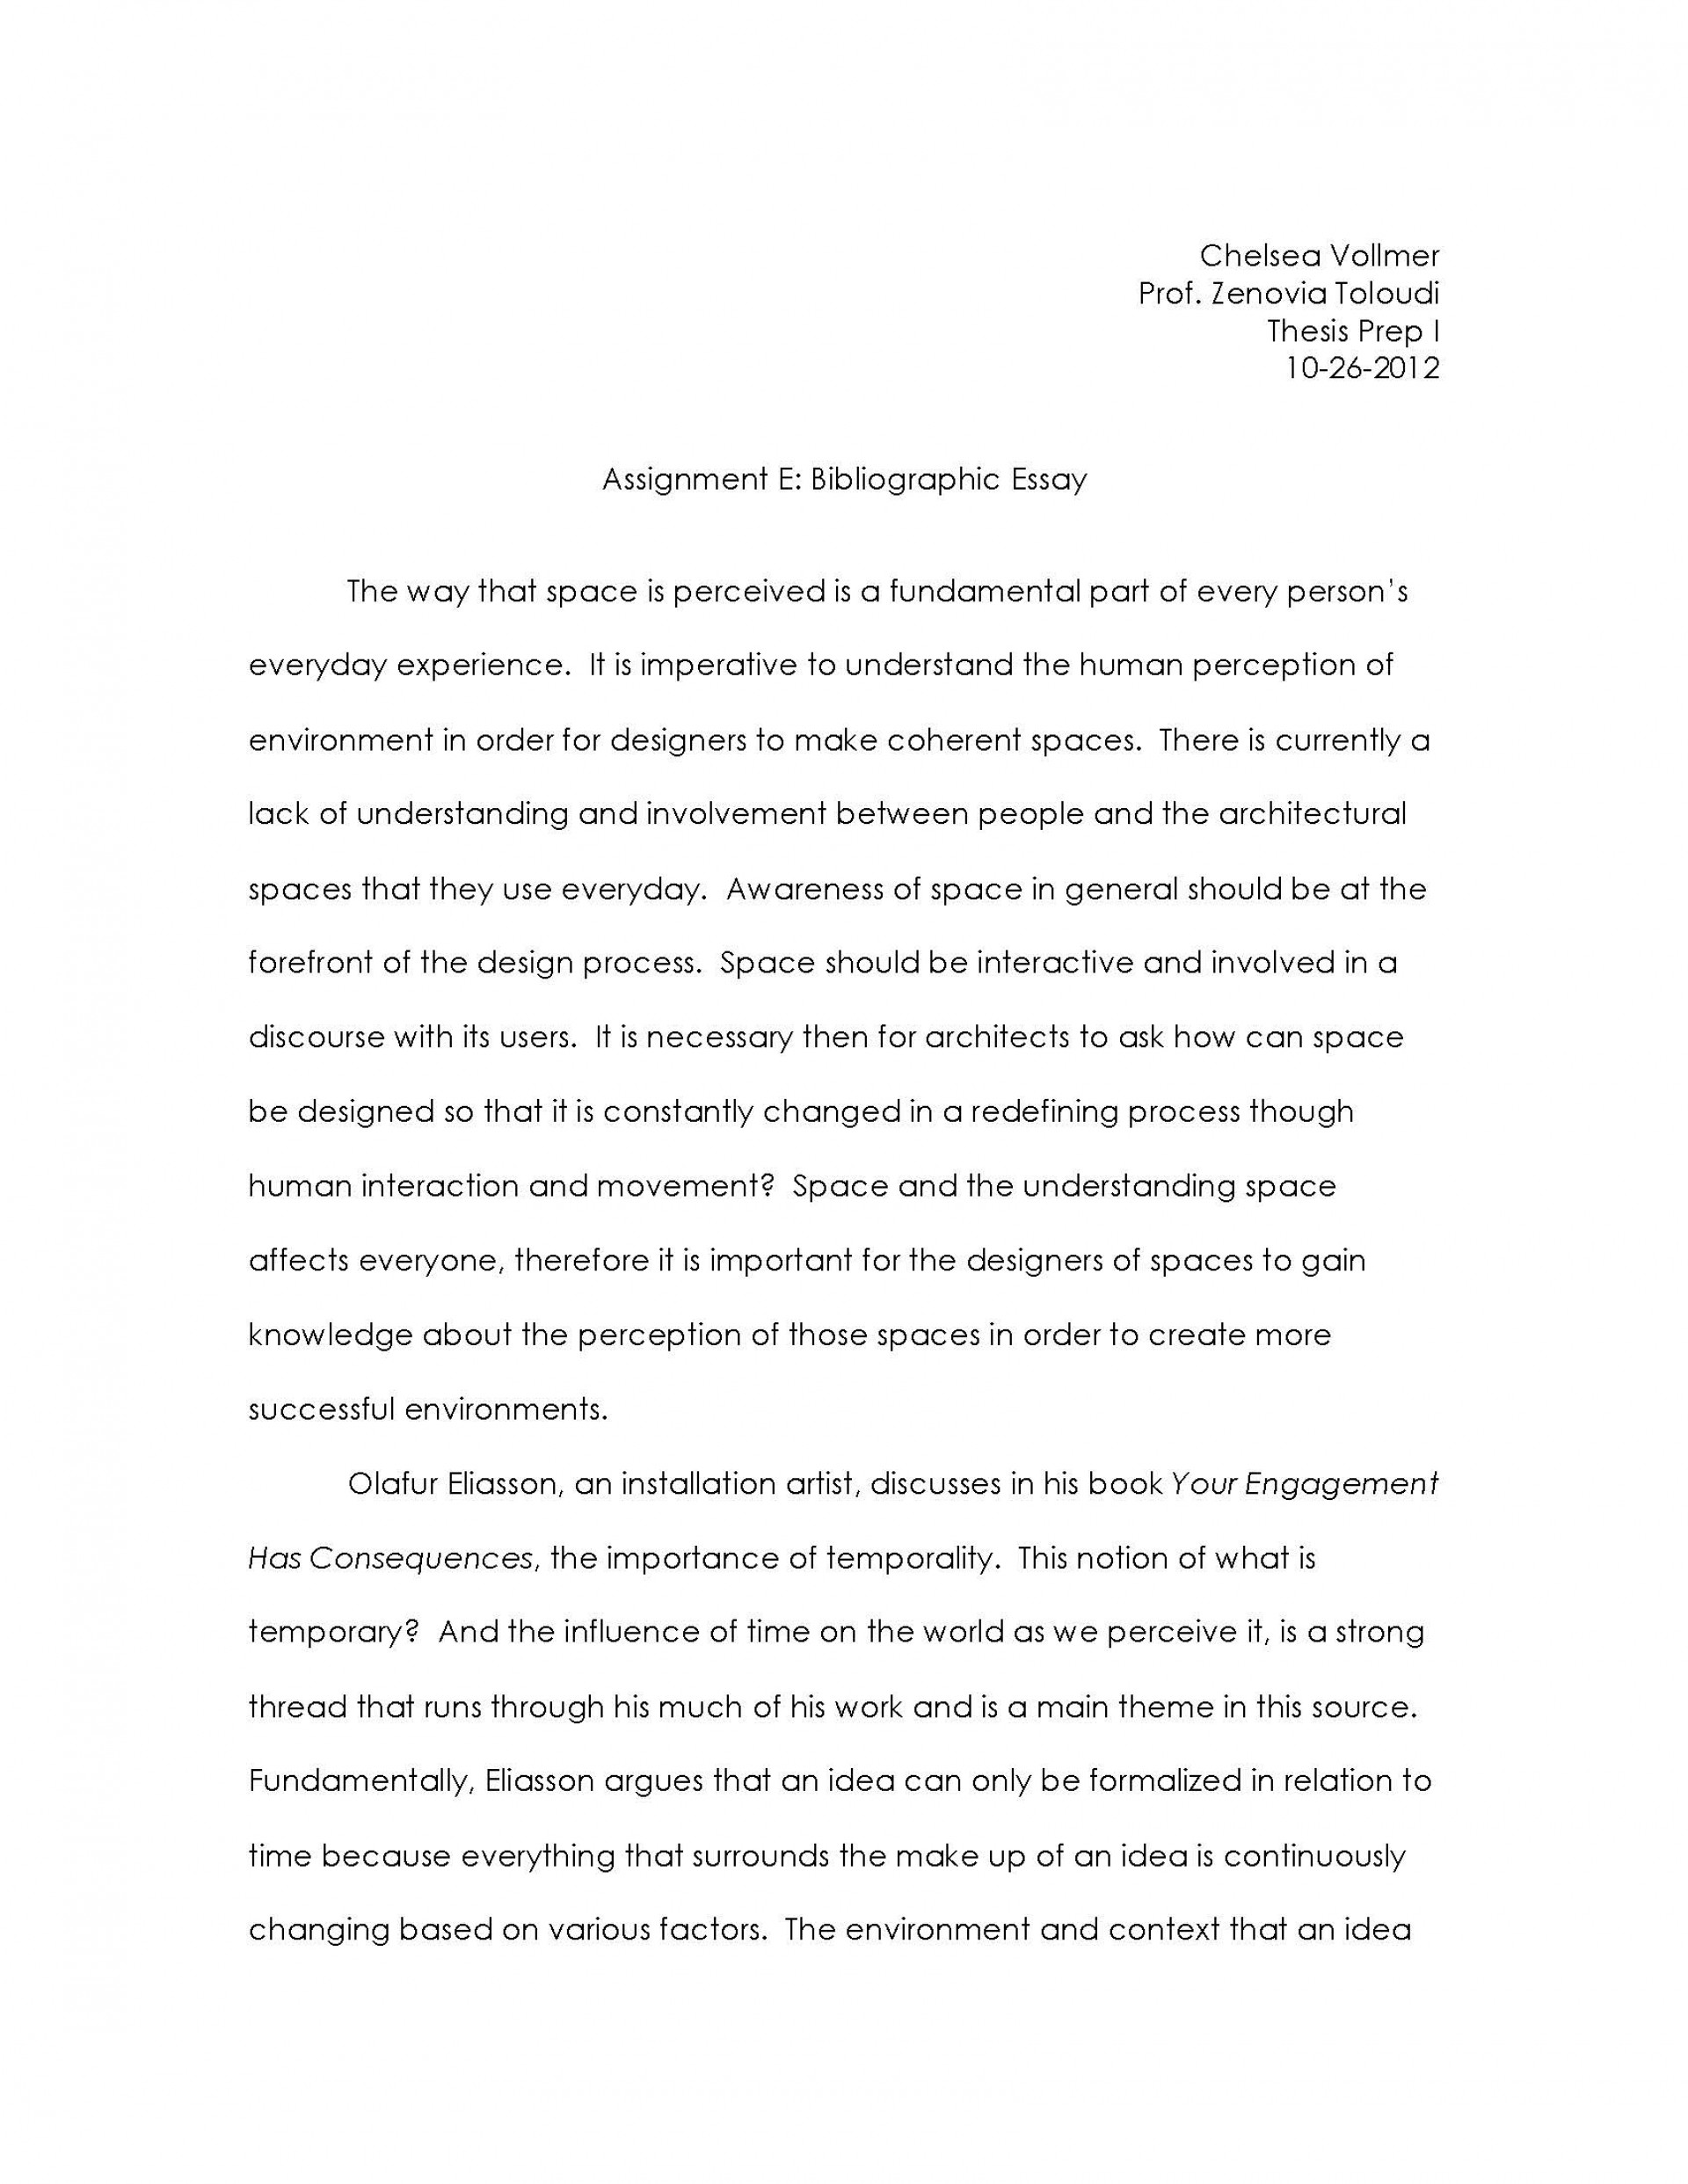 008 Assignment E Page 12 Essay Example Beautiful Satire Outline Funny Topics 1920